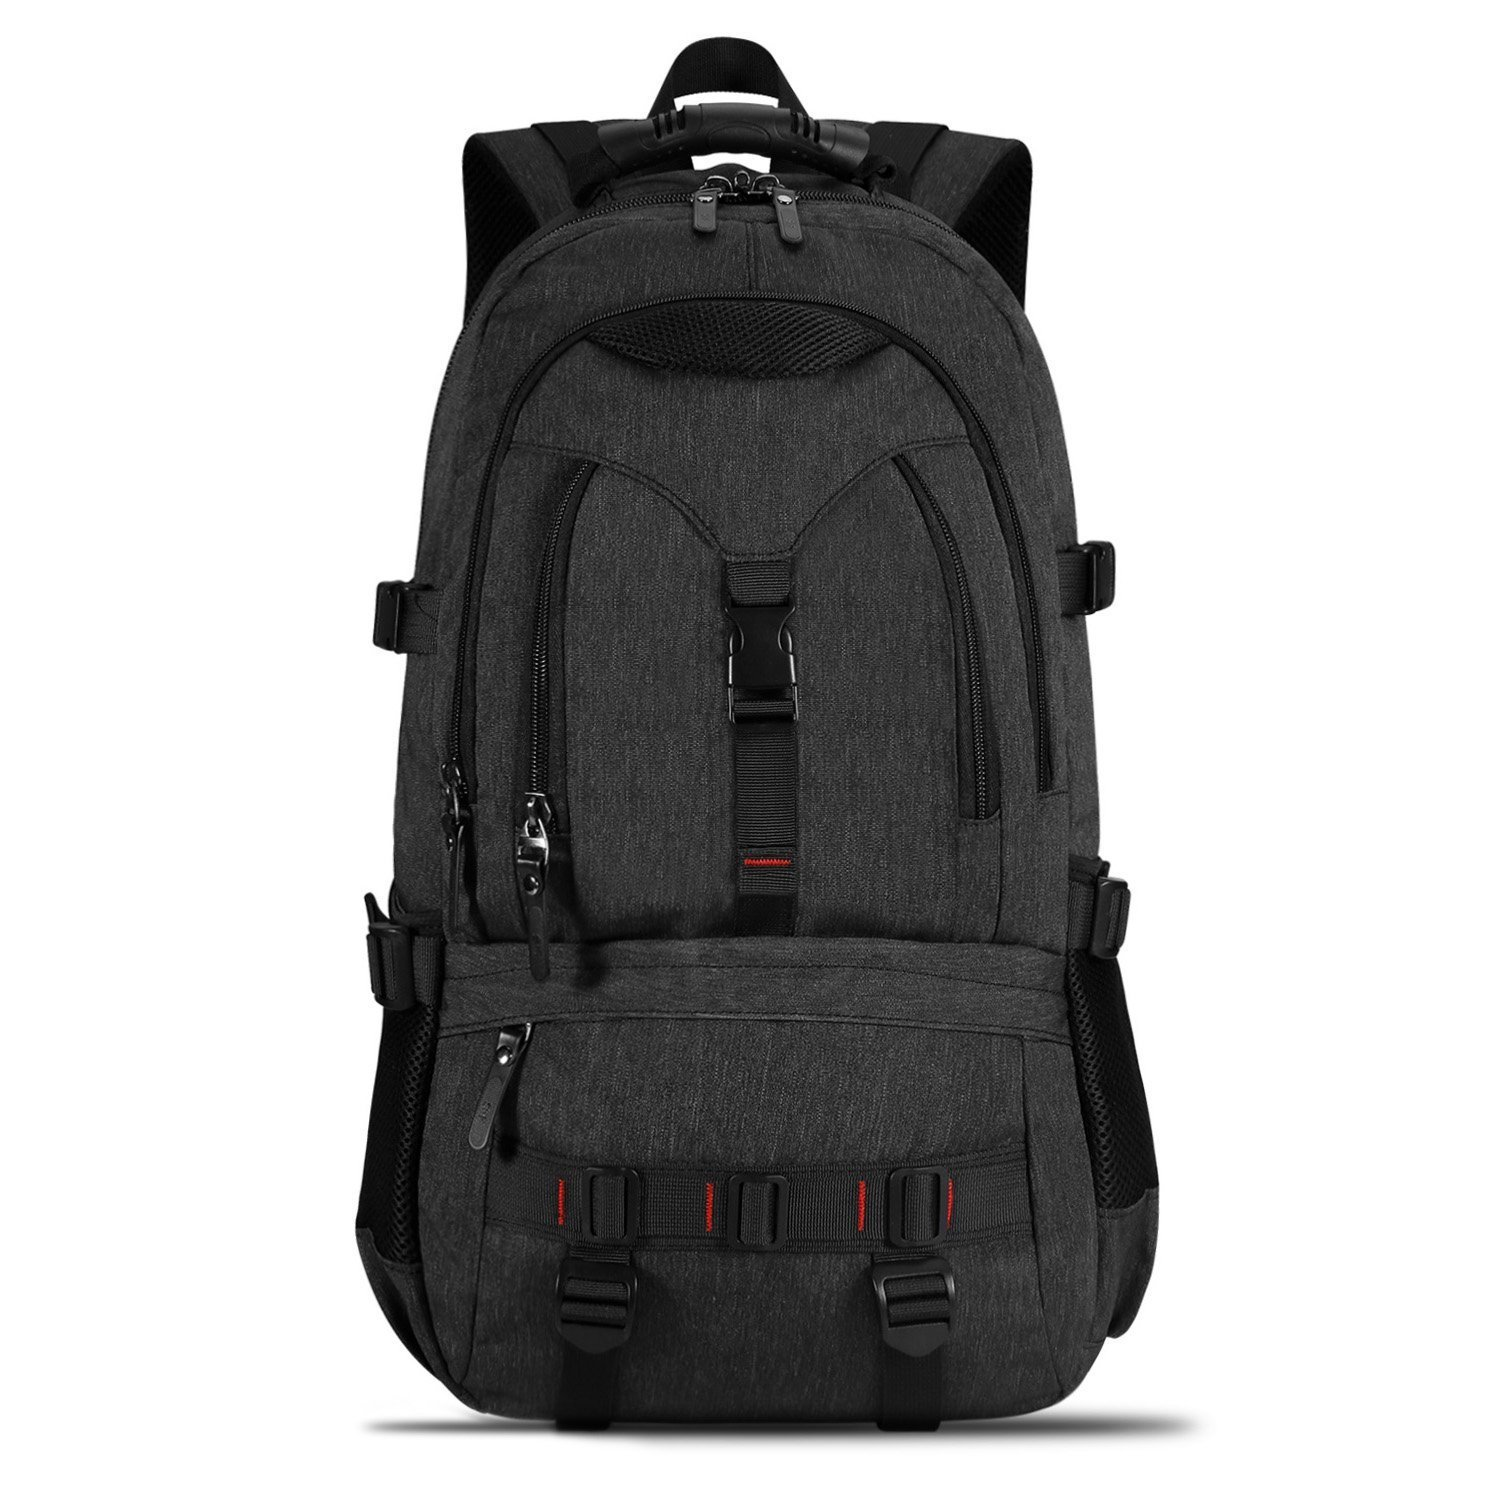 d2c4e4243c65 KAKA Water Resistant Laptop Backpack for 17-Inch Laptop Travel Work School  College Bag (